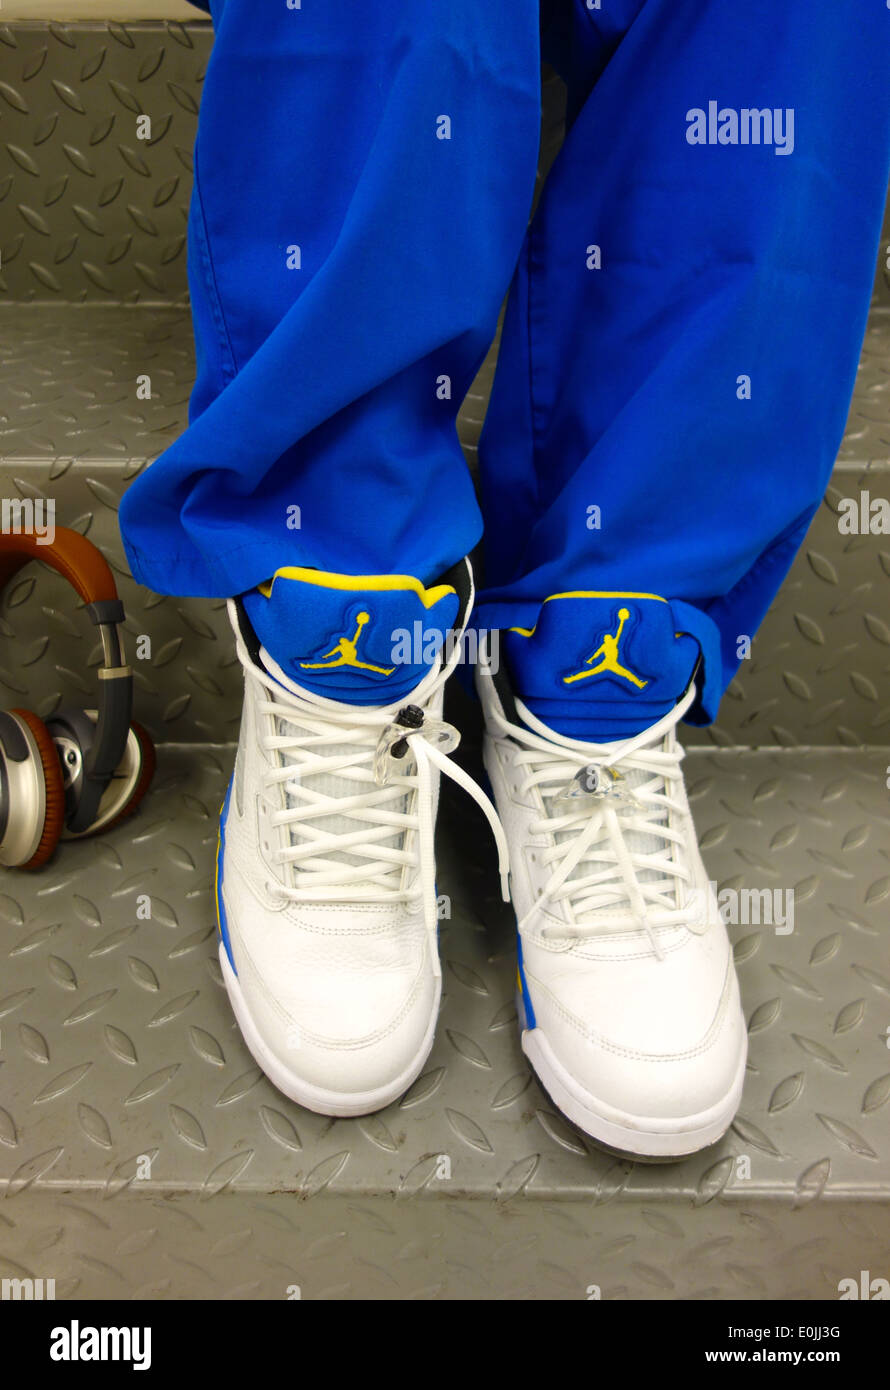 spain air jordan 5 azul and blanco 35bb9 a44b7